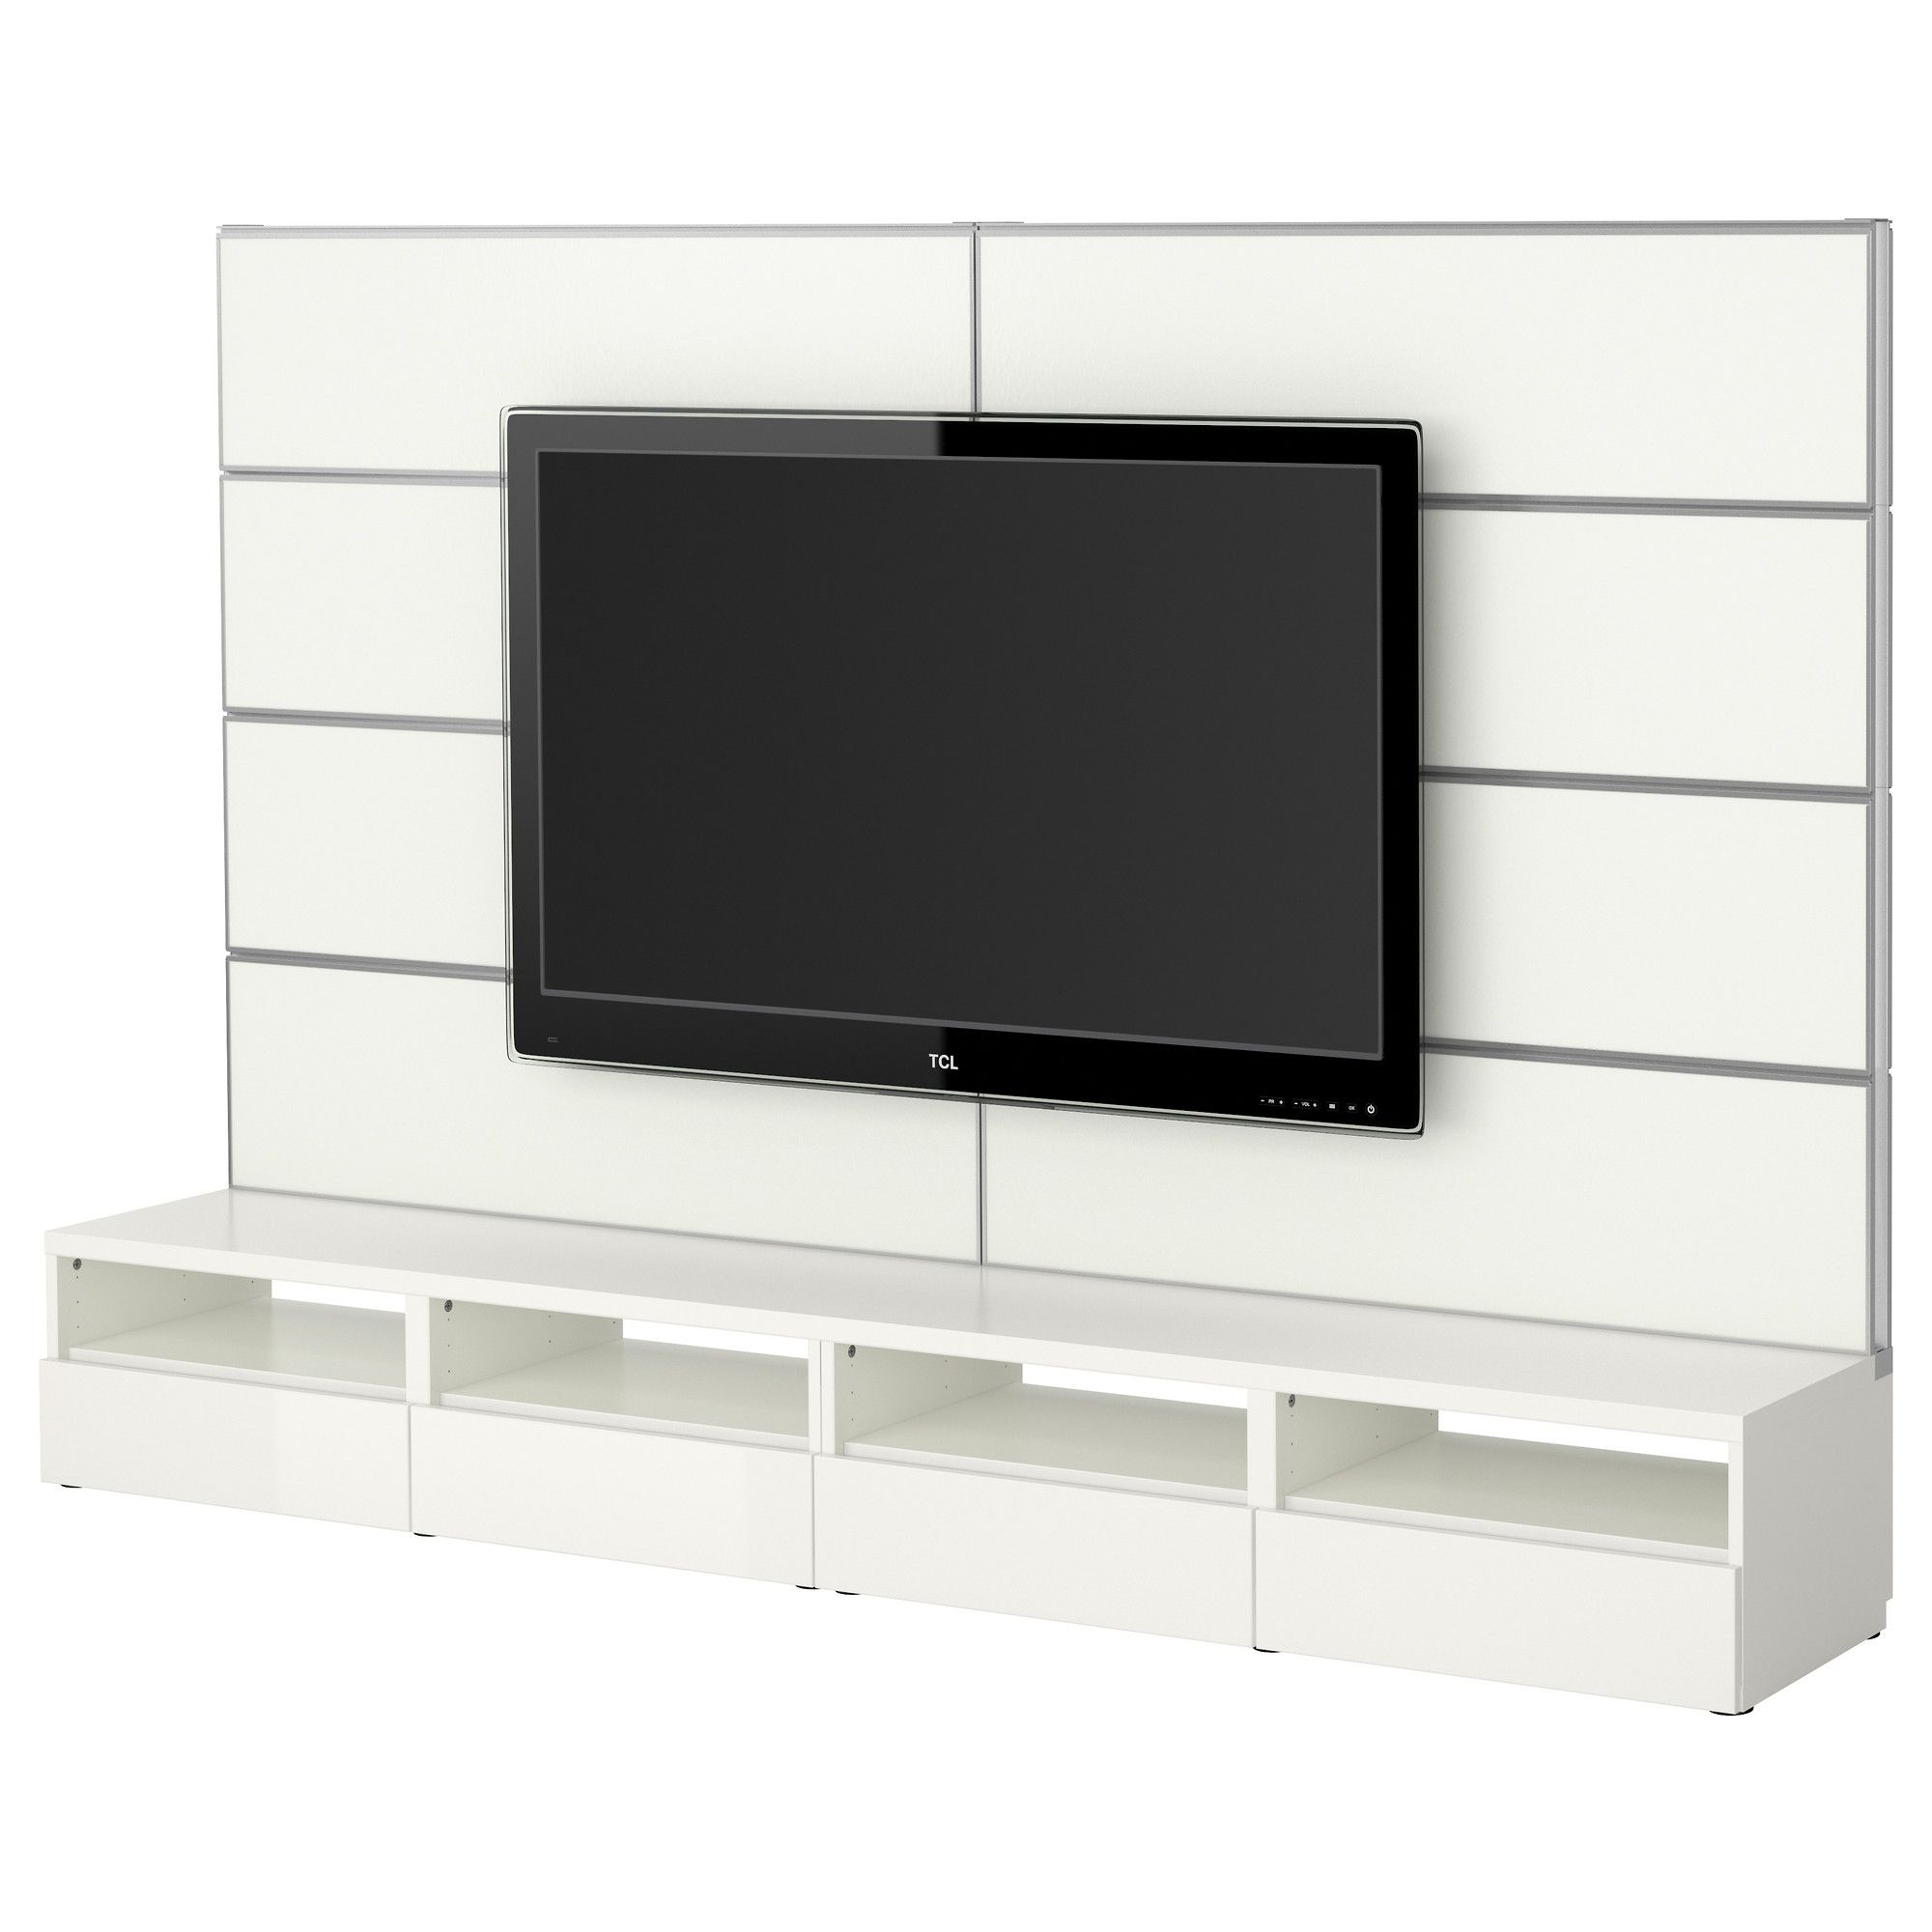 Support Tele Ikea - Best Framst Tv Storage Combination White Ikea Apt [mjhdah]http://www.ikea.com/be/fr/images/products/uppleva-support-pour-tv-pivotant-gris-clair__0475428_pe615587_s5.jpg